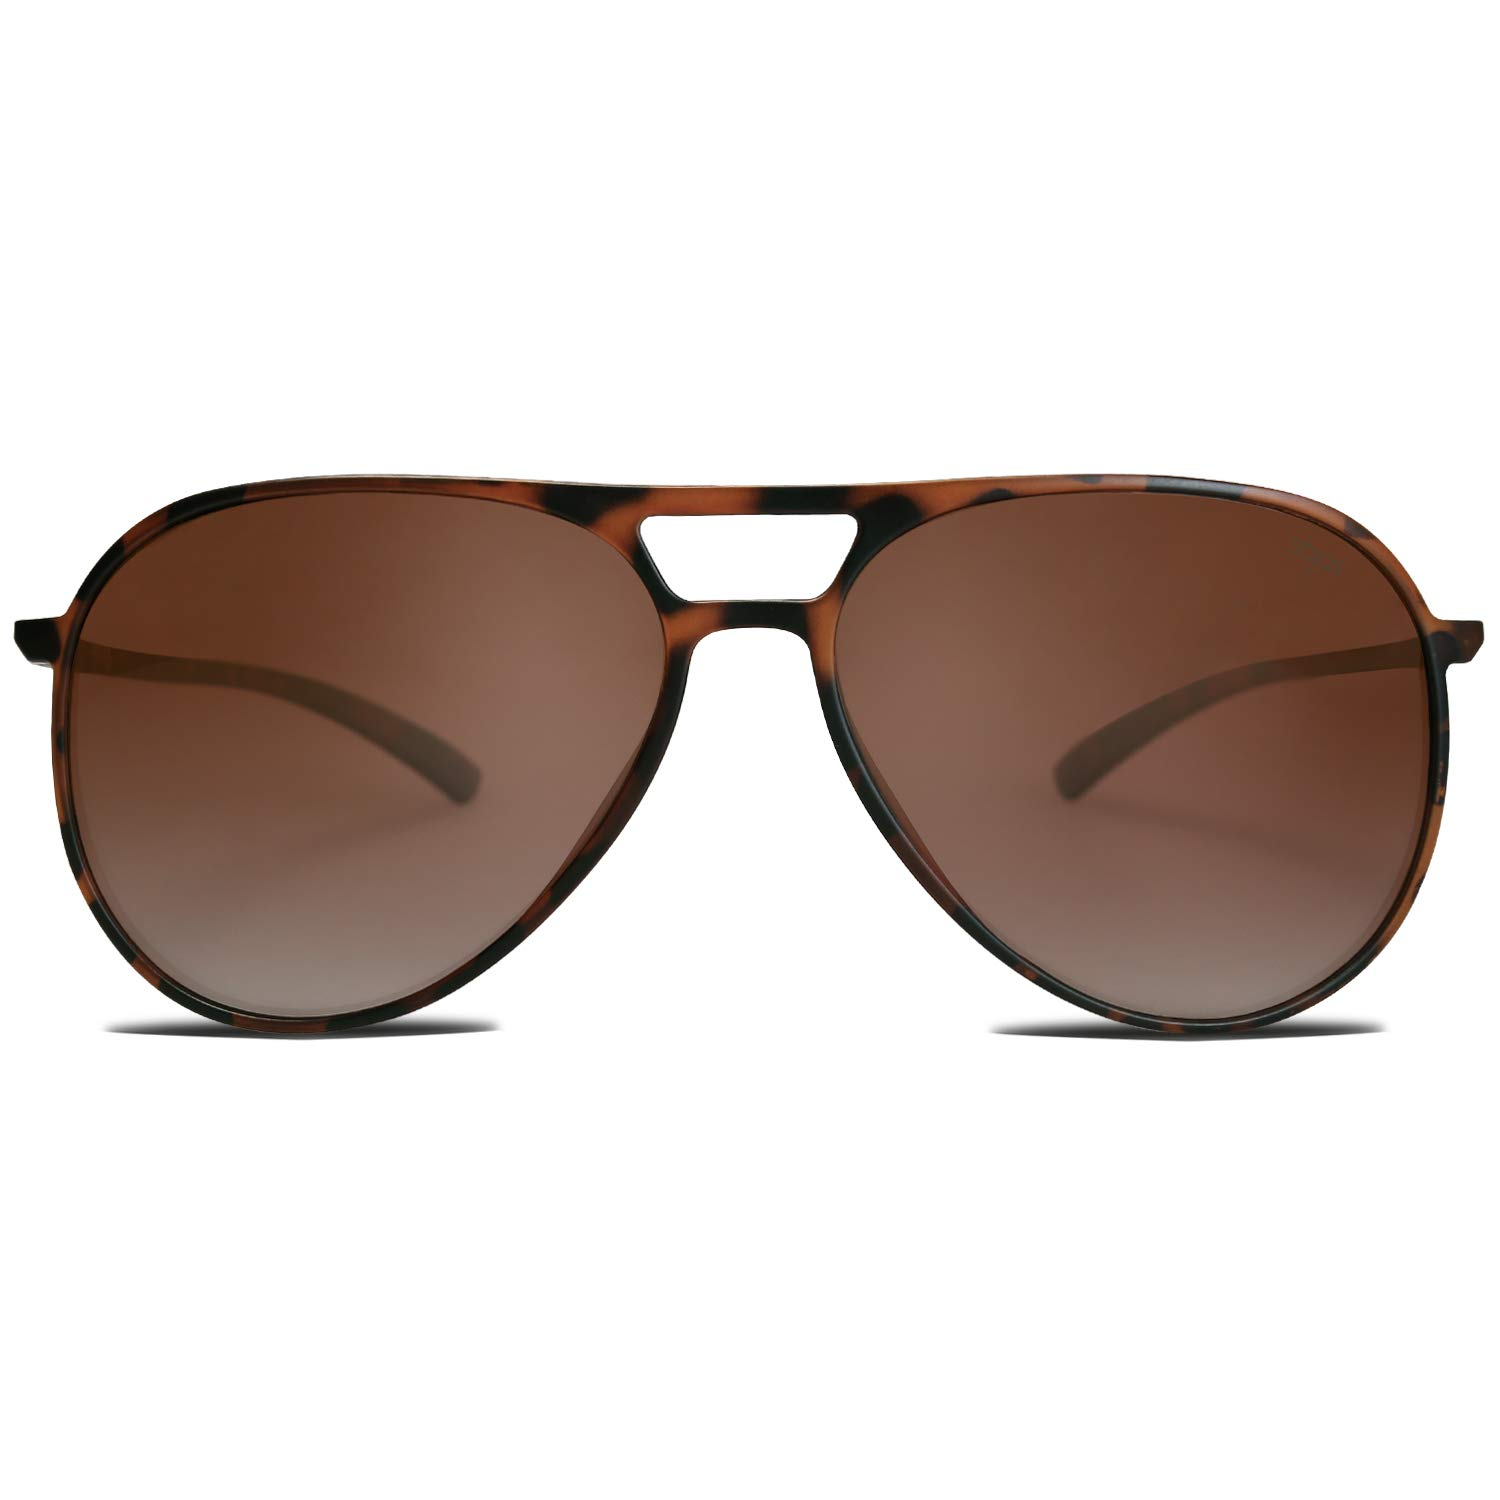 SOJOS Classic Polarized Ultra Lightweight Flexible Aviator Unisex Sunglasses JOURNEY SJ2065 with Matt Brown Demi Frame/Gradient Brown Lens by SOJOS